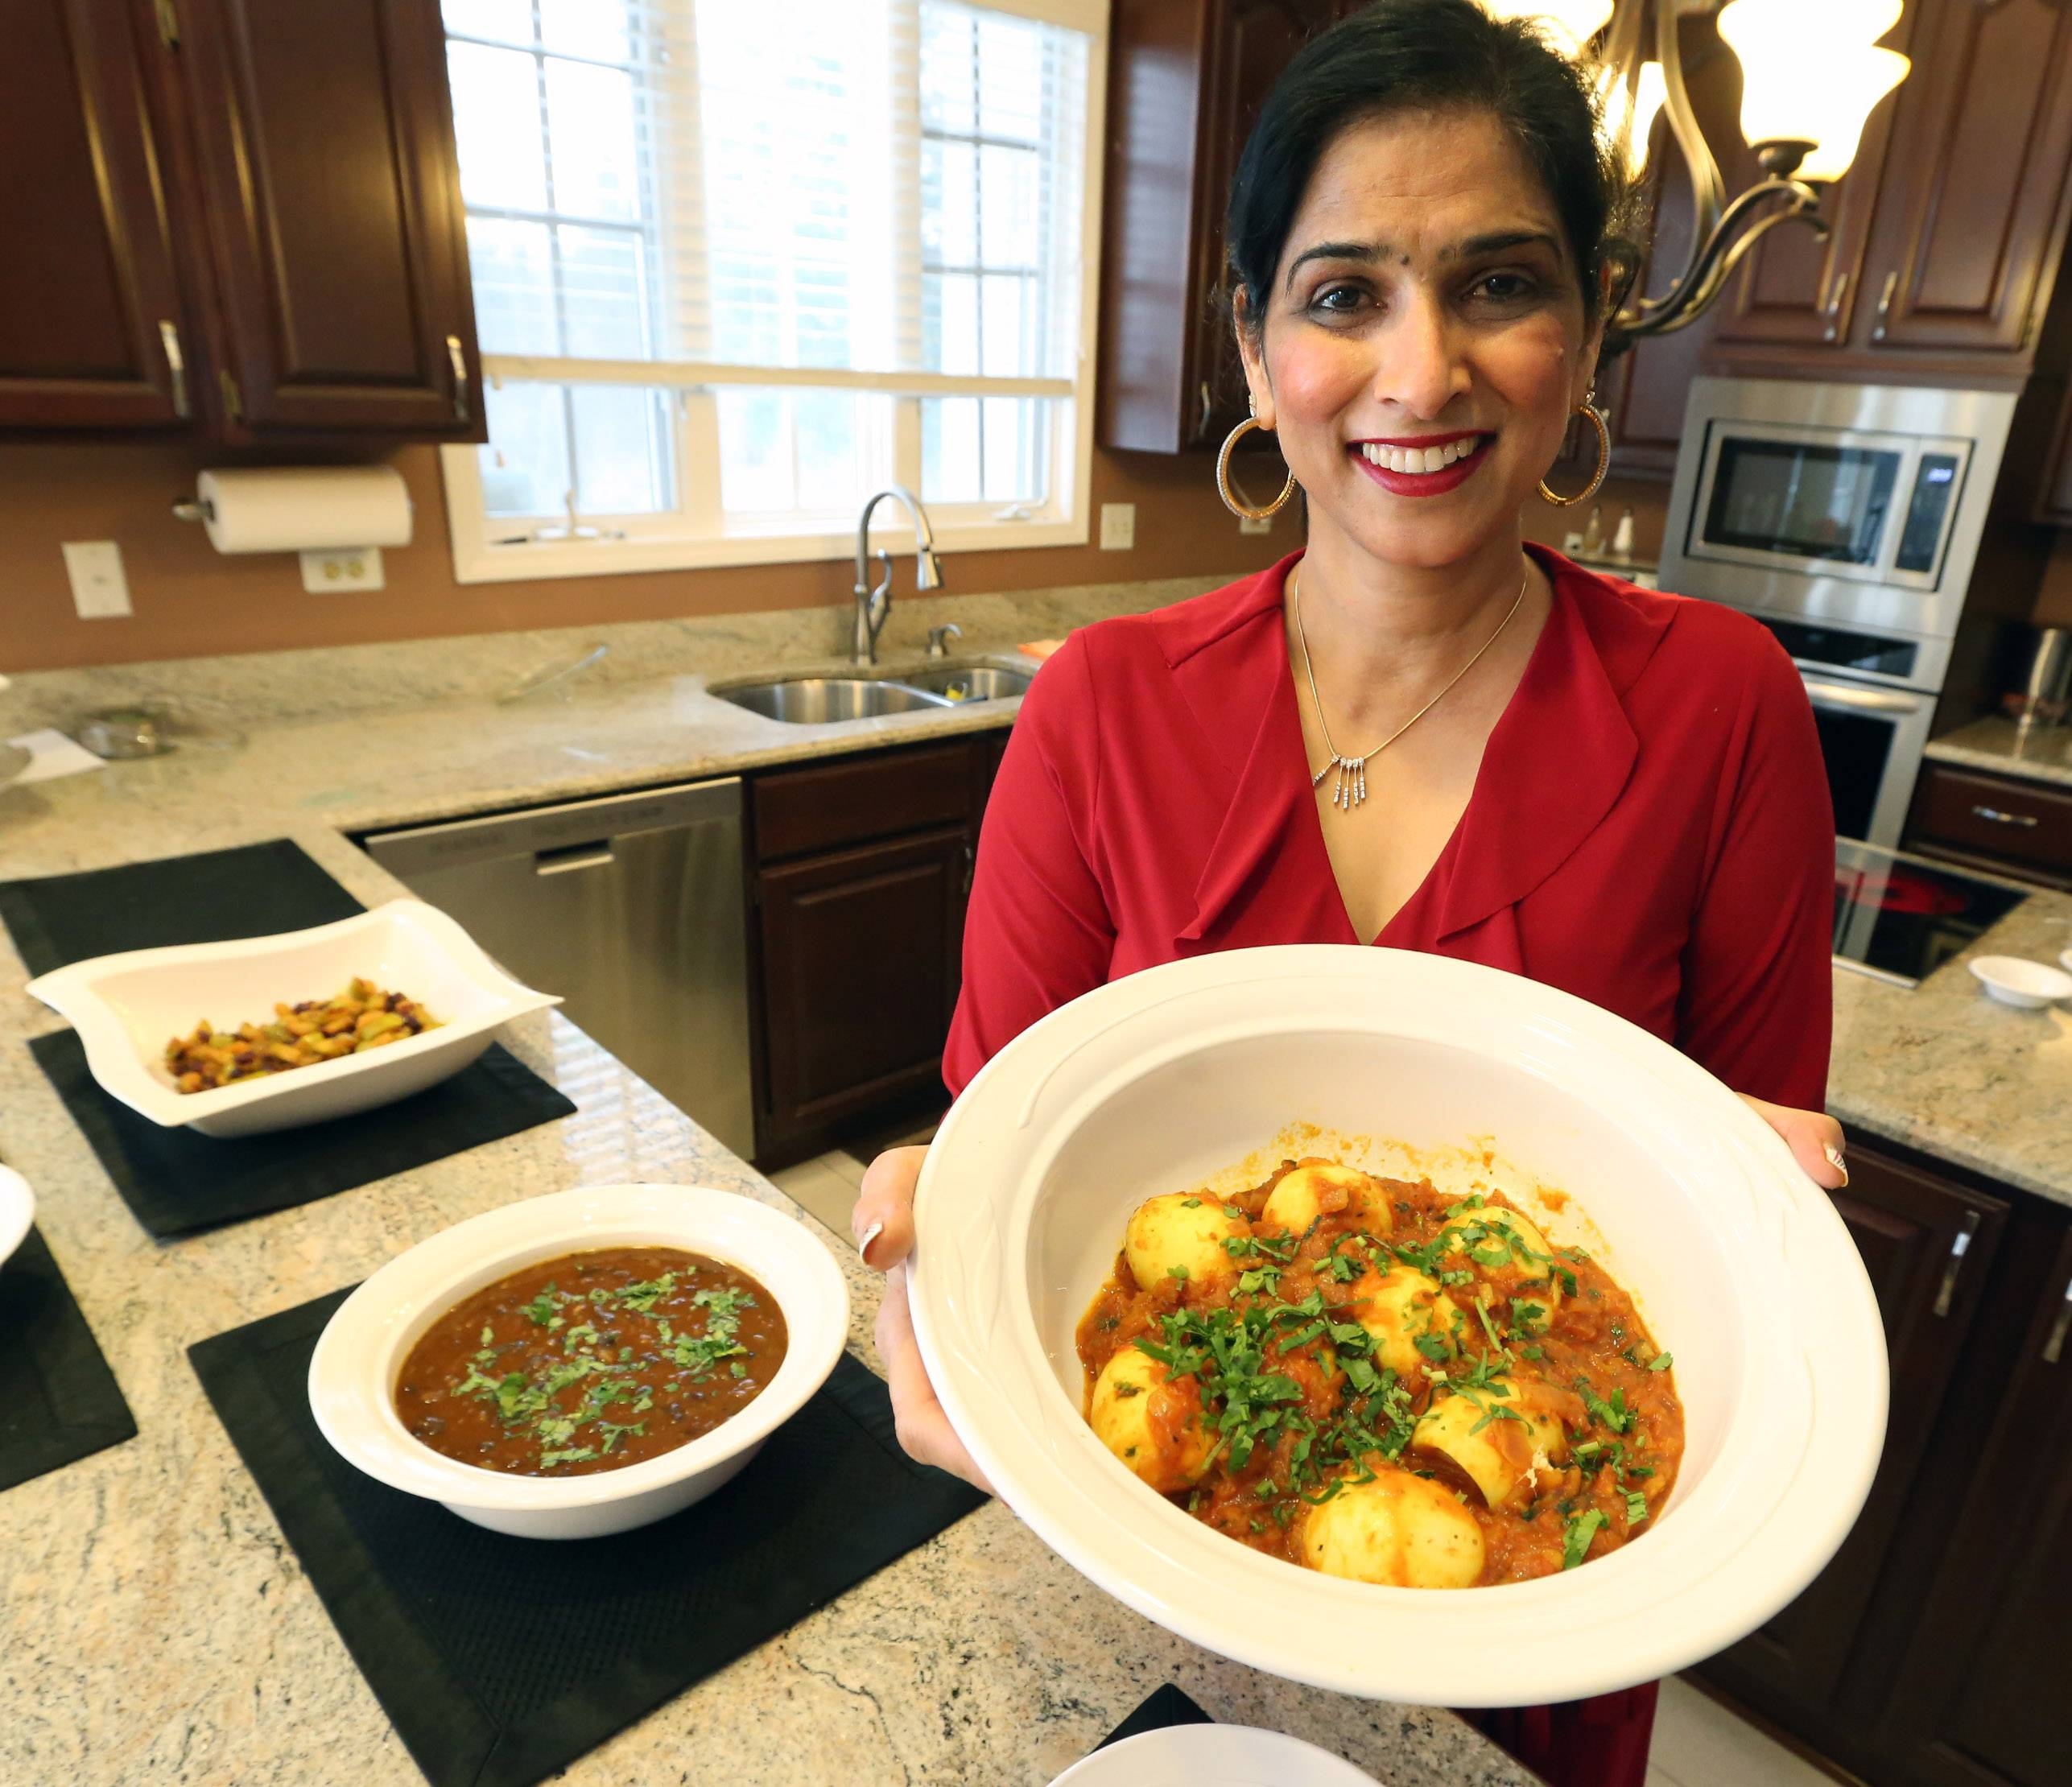 Cook of the Week Sushma Bhanot enjoys introducing friends to homemade Indian cuisine, like curry eggs, from right, curry red kidney beans and an sweet-savory fruit dish called sabzi. See her recipe for curry eggs at dailyherald.com/lifestyle/food.